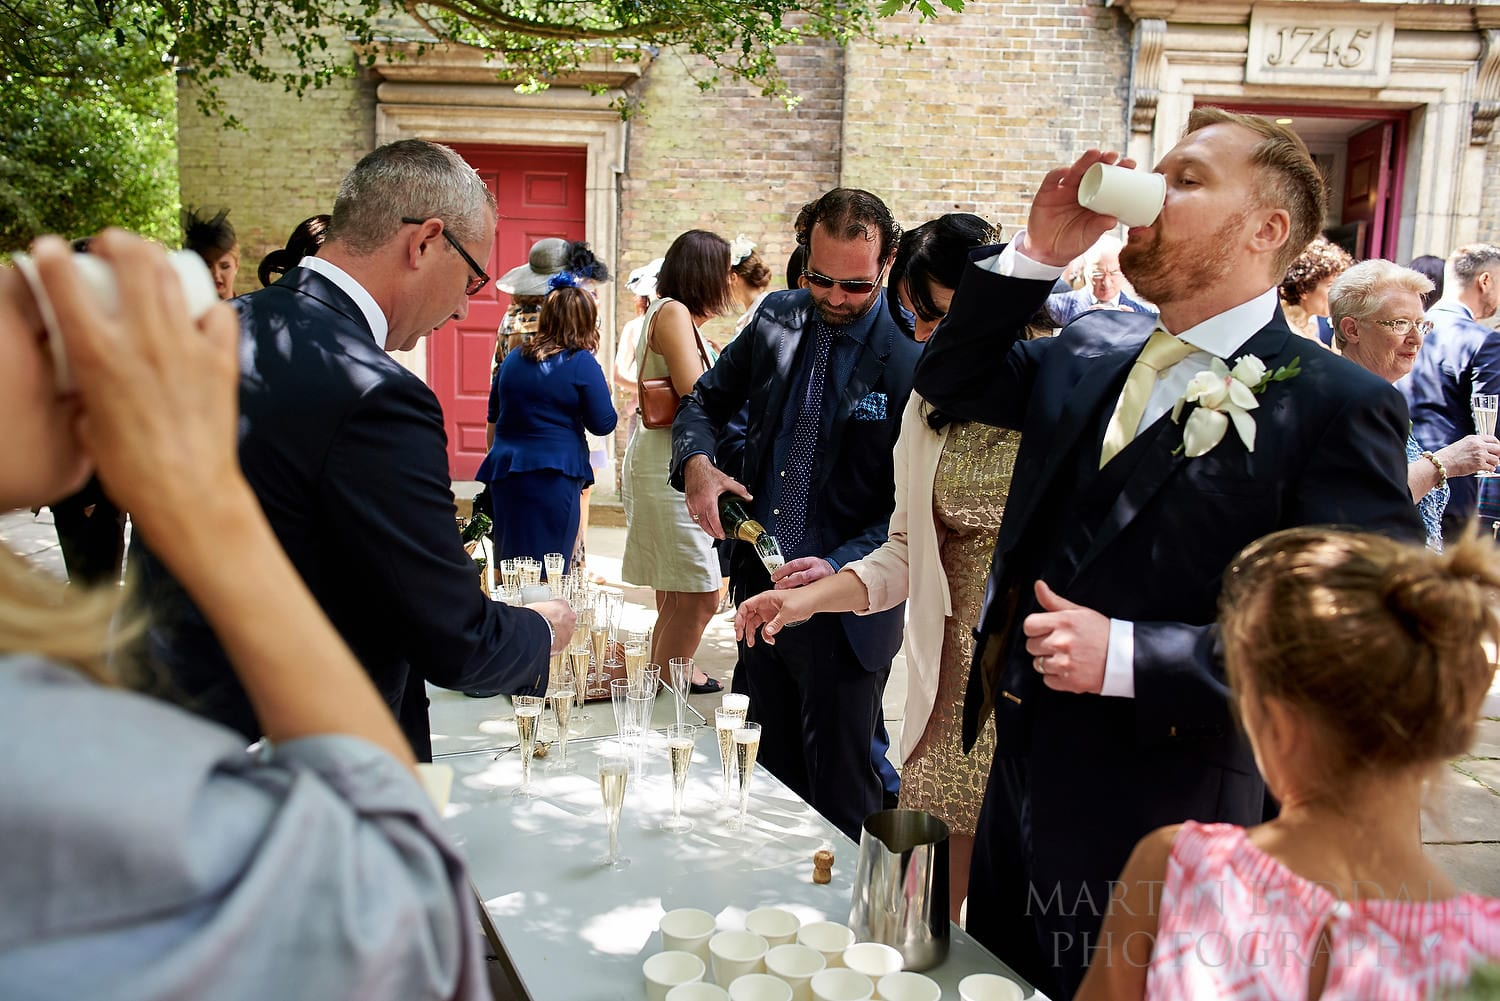 Drinks in the churchyard after the wedding ceremony at Hampstead Parish Church